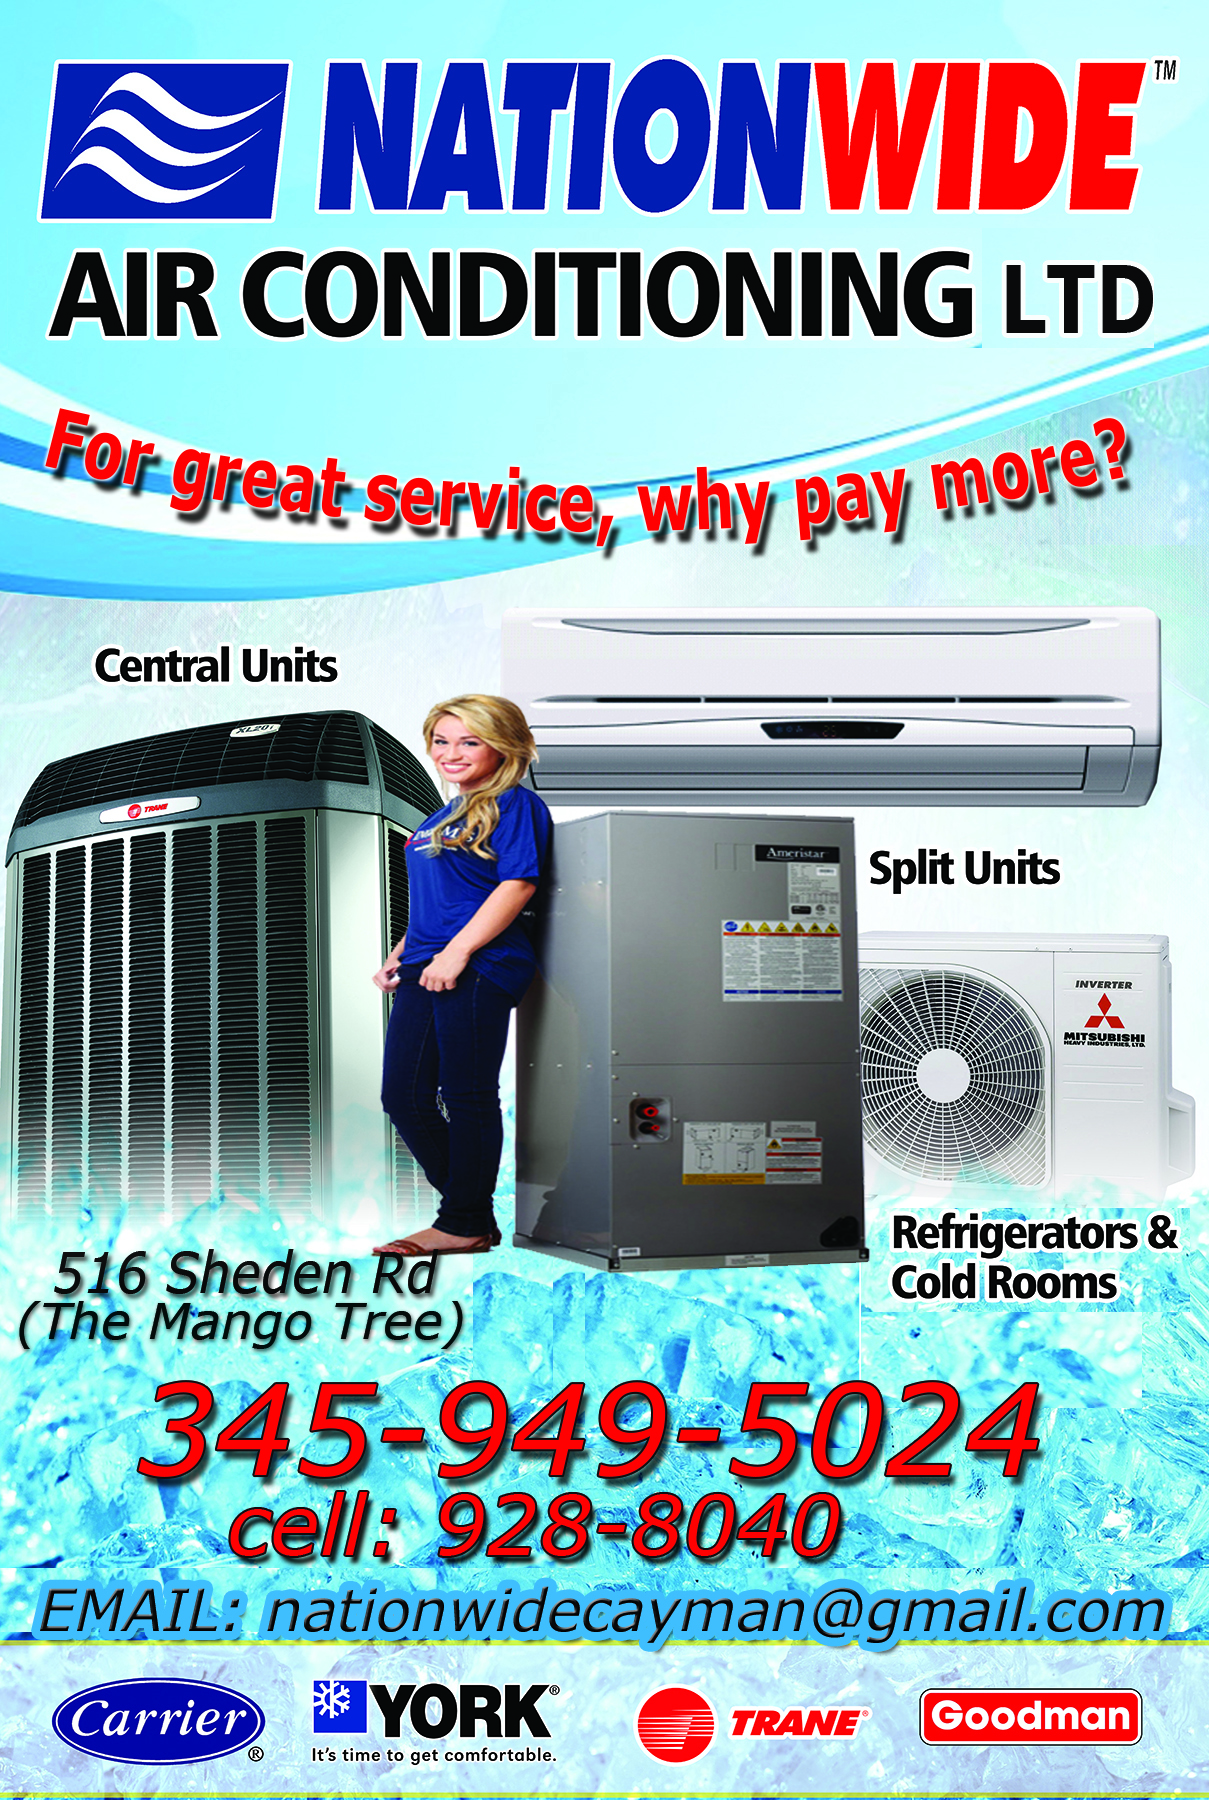 Nationwide Air Conditioning Refrigeration In George Town Ecayonline Electrical Engineering And Cayman Islands